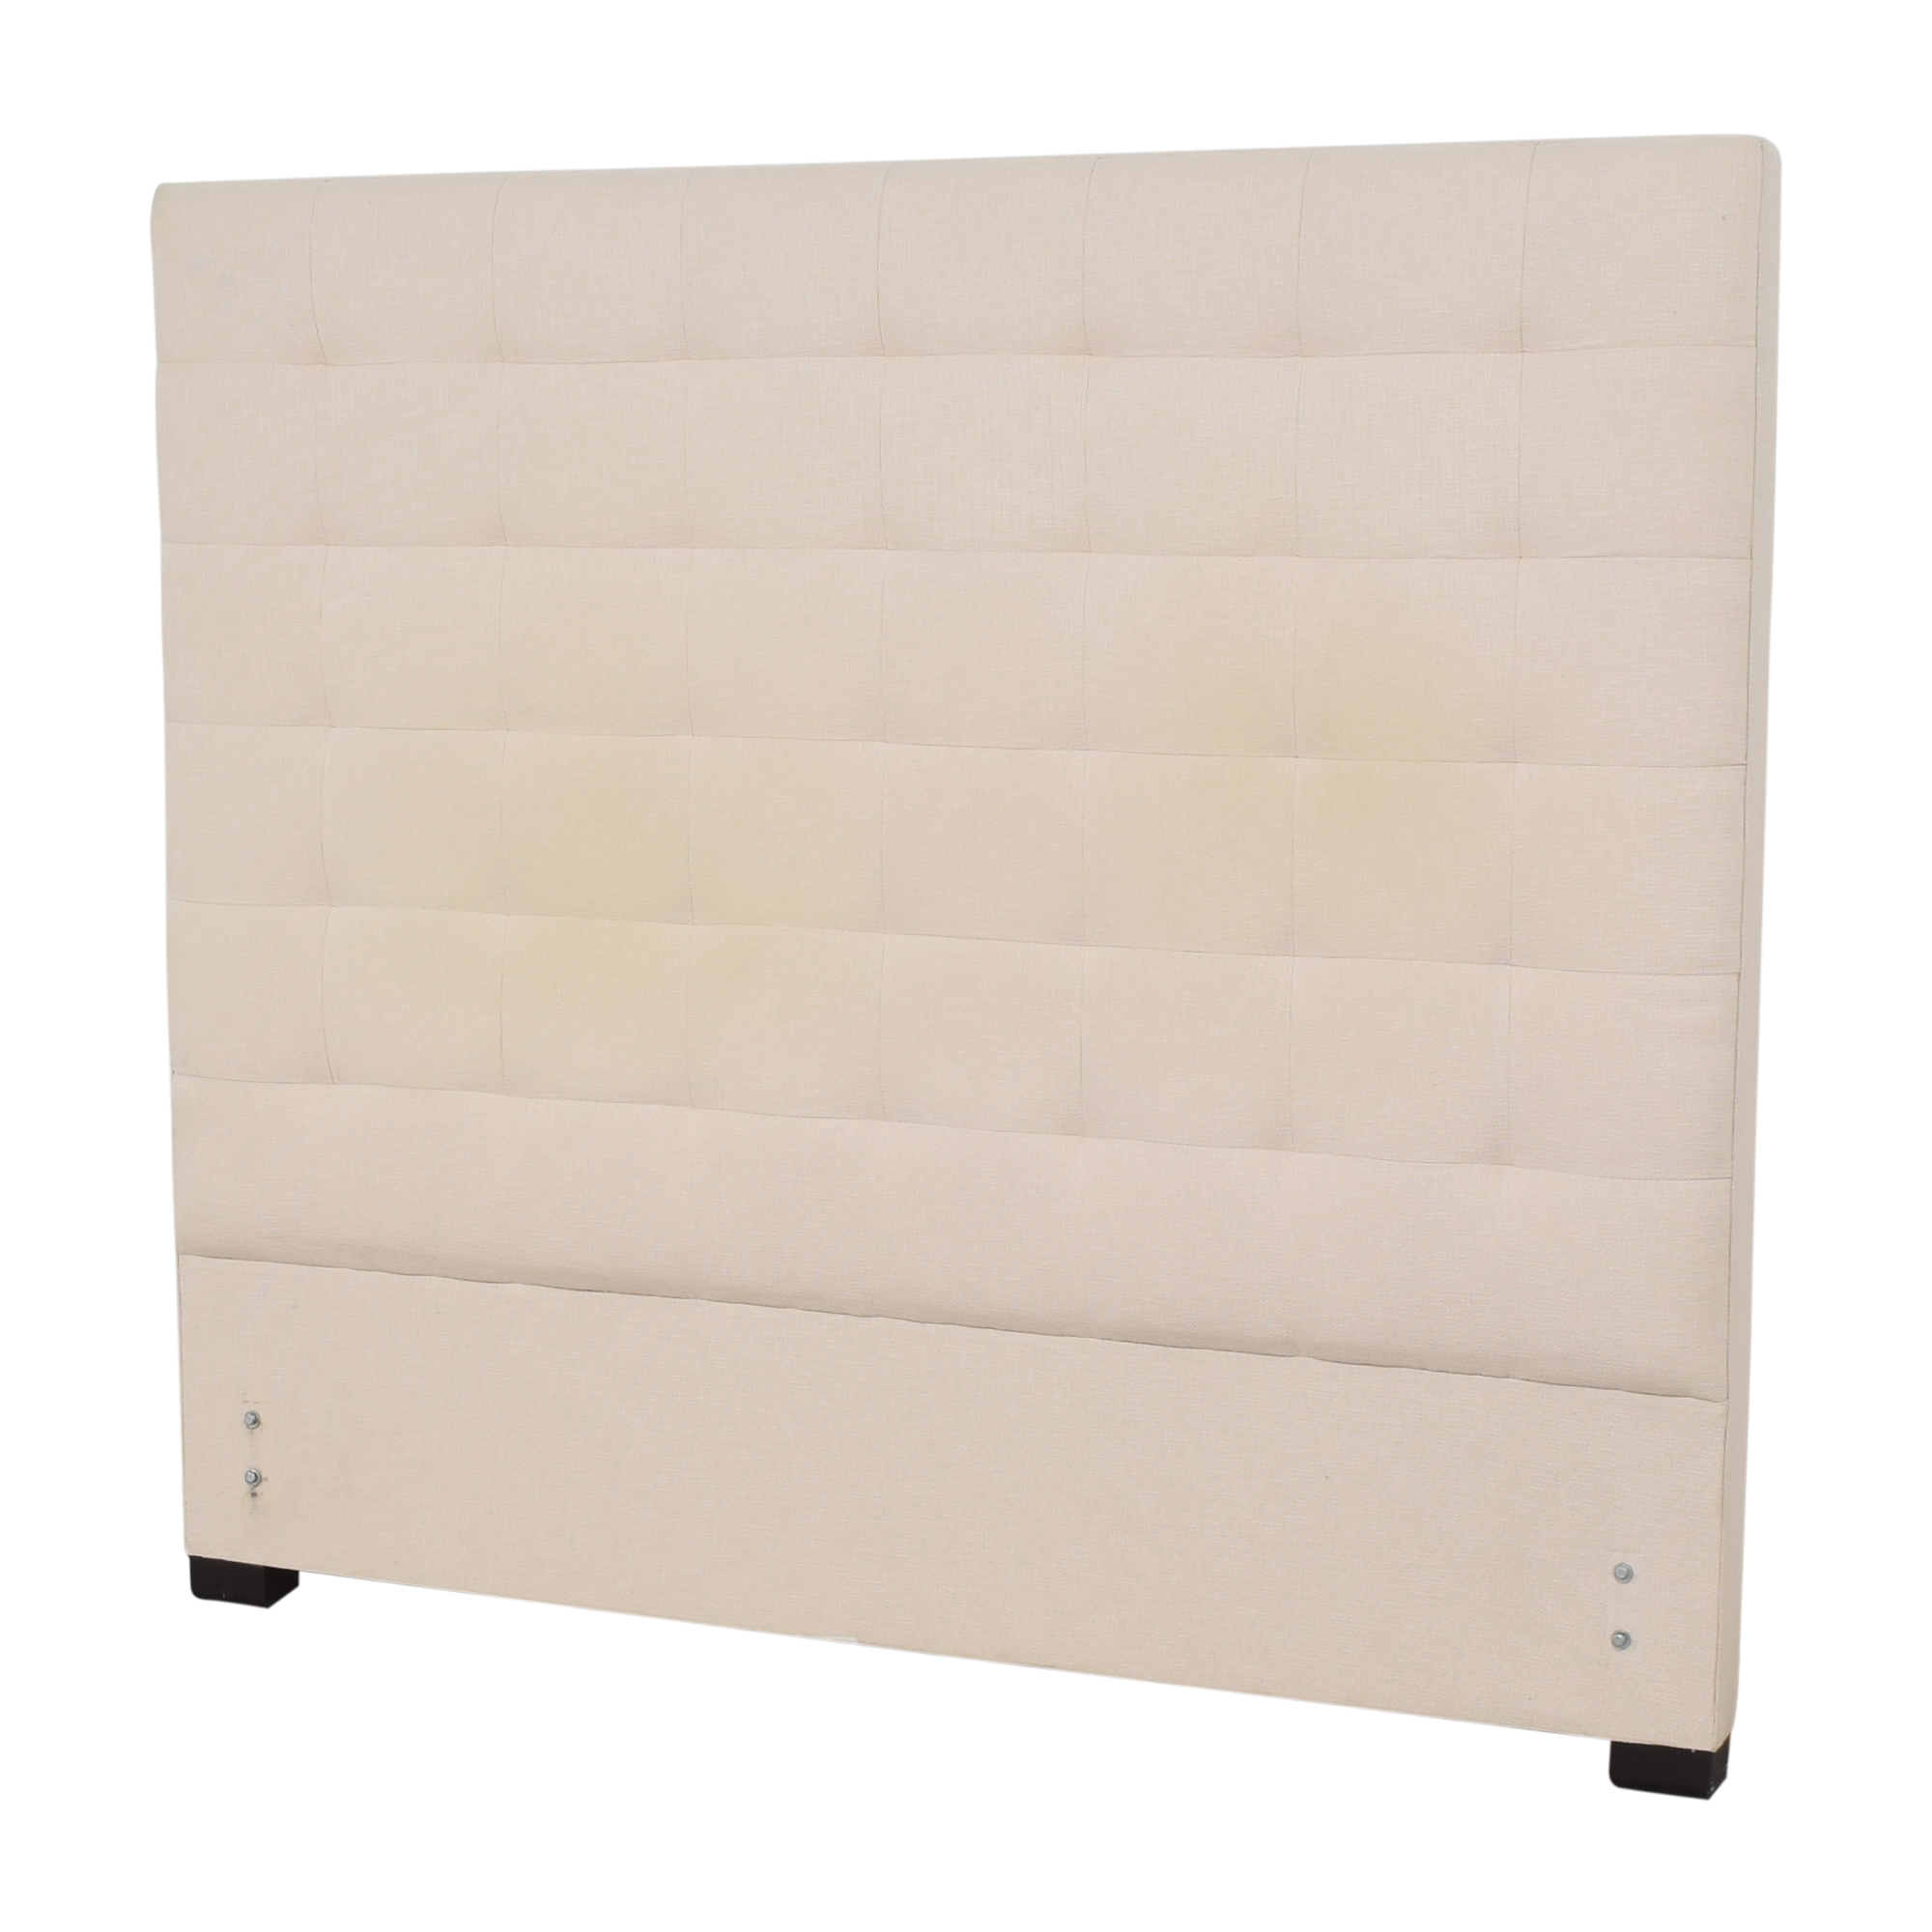 Bernhardt Bernhardt Tufted Queen Headboard on sale